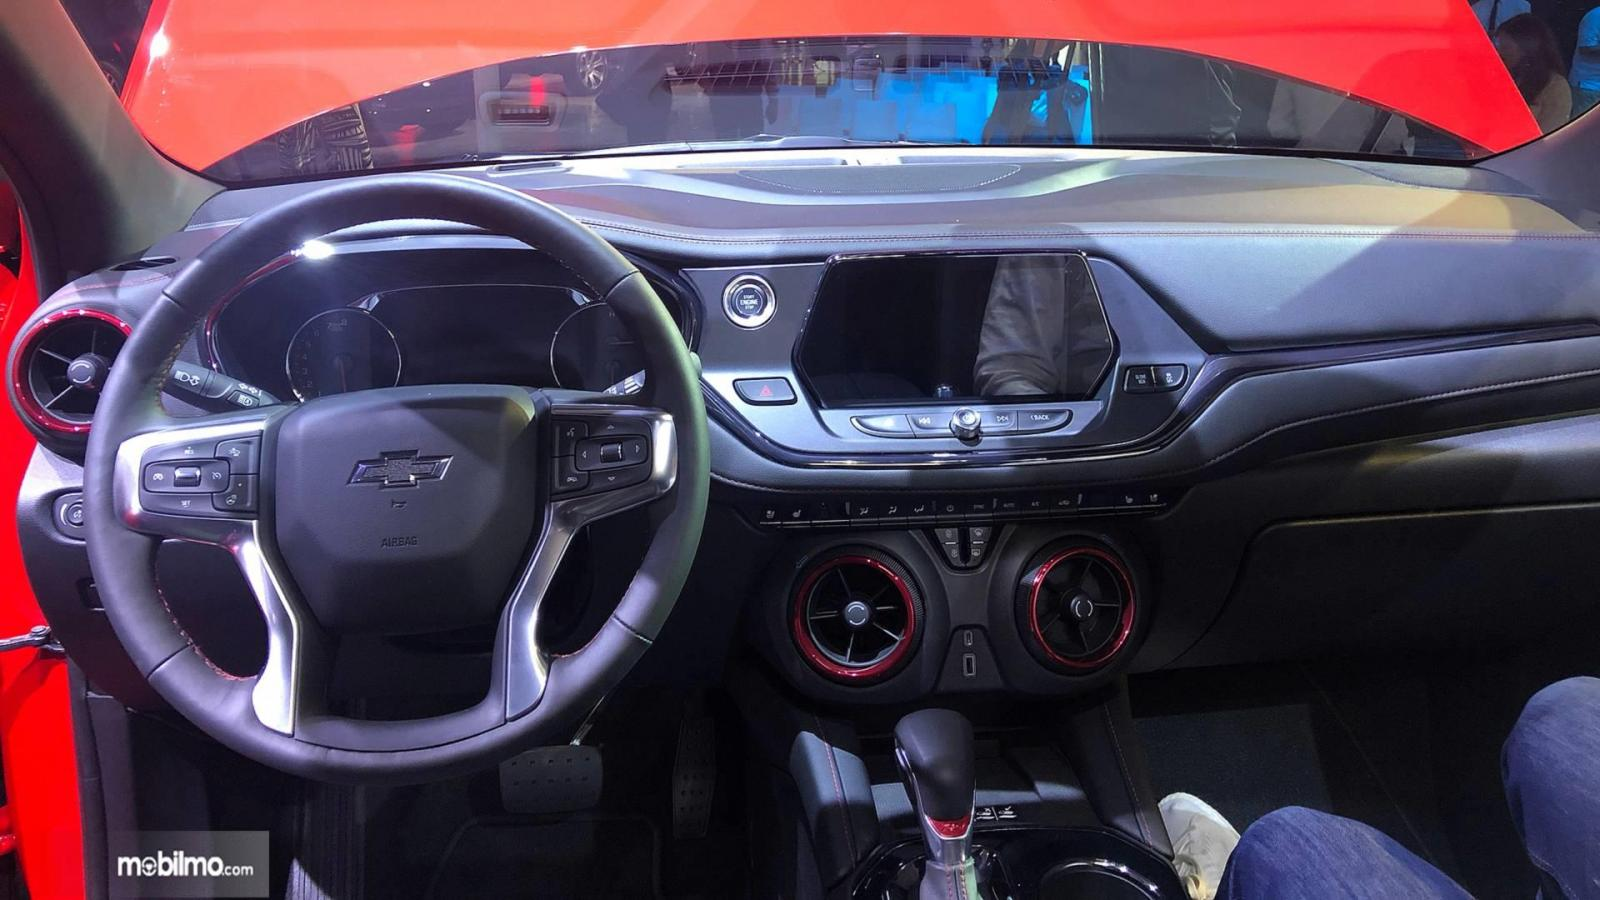 Layout dasbor dan setir All New Chevrolet Blazer 2019